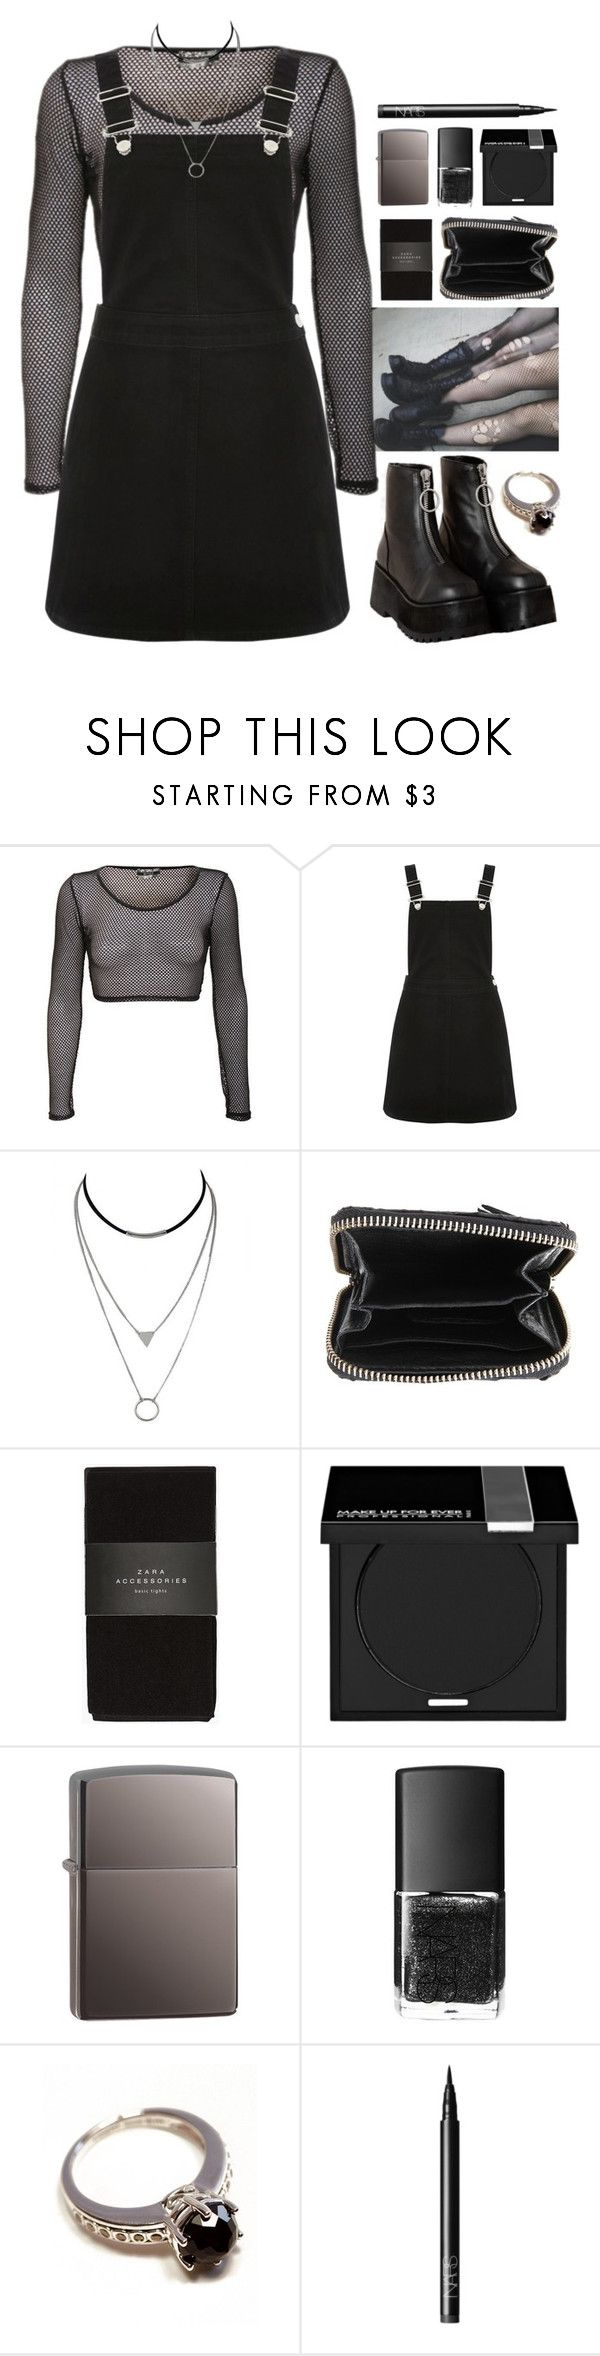 """So Emo"" by brigi-bodoki ❤ liked on Polyvore featuring Oasis, Zadig & Voltaire, Zara, MAKE UP FOR EVER, Zippo, NARS Cosmetics and Anna Sheffield"